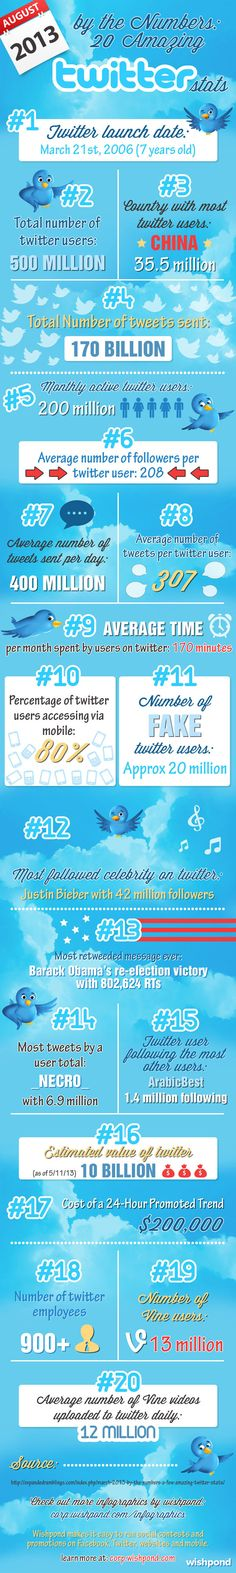 By the numbers 20 amazing Twitter stats (Aug 2013) #infografia #infographic #socialmedia